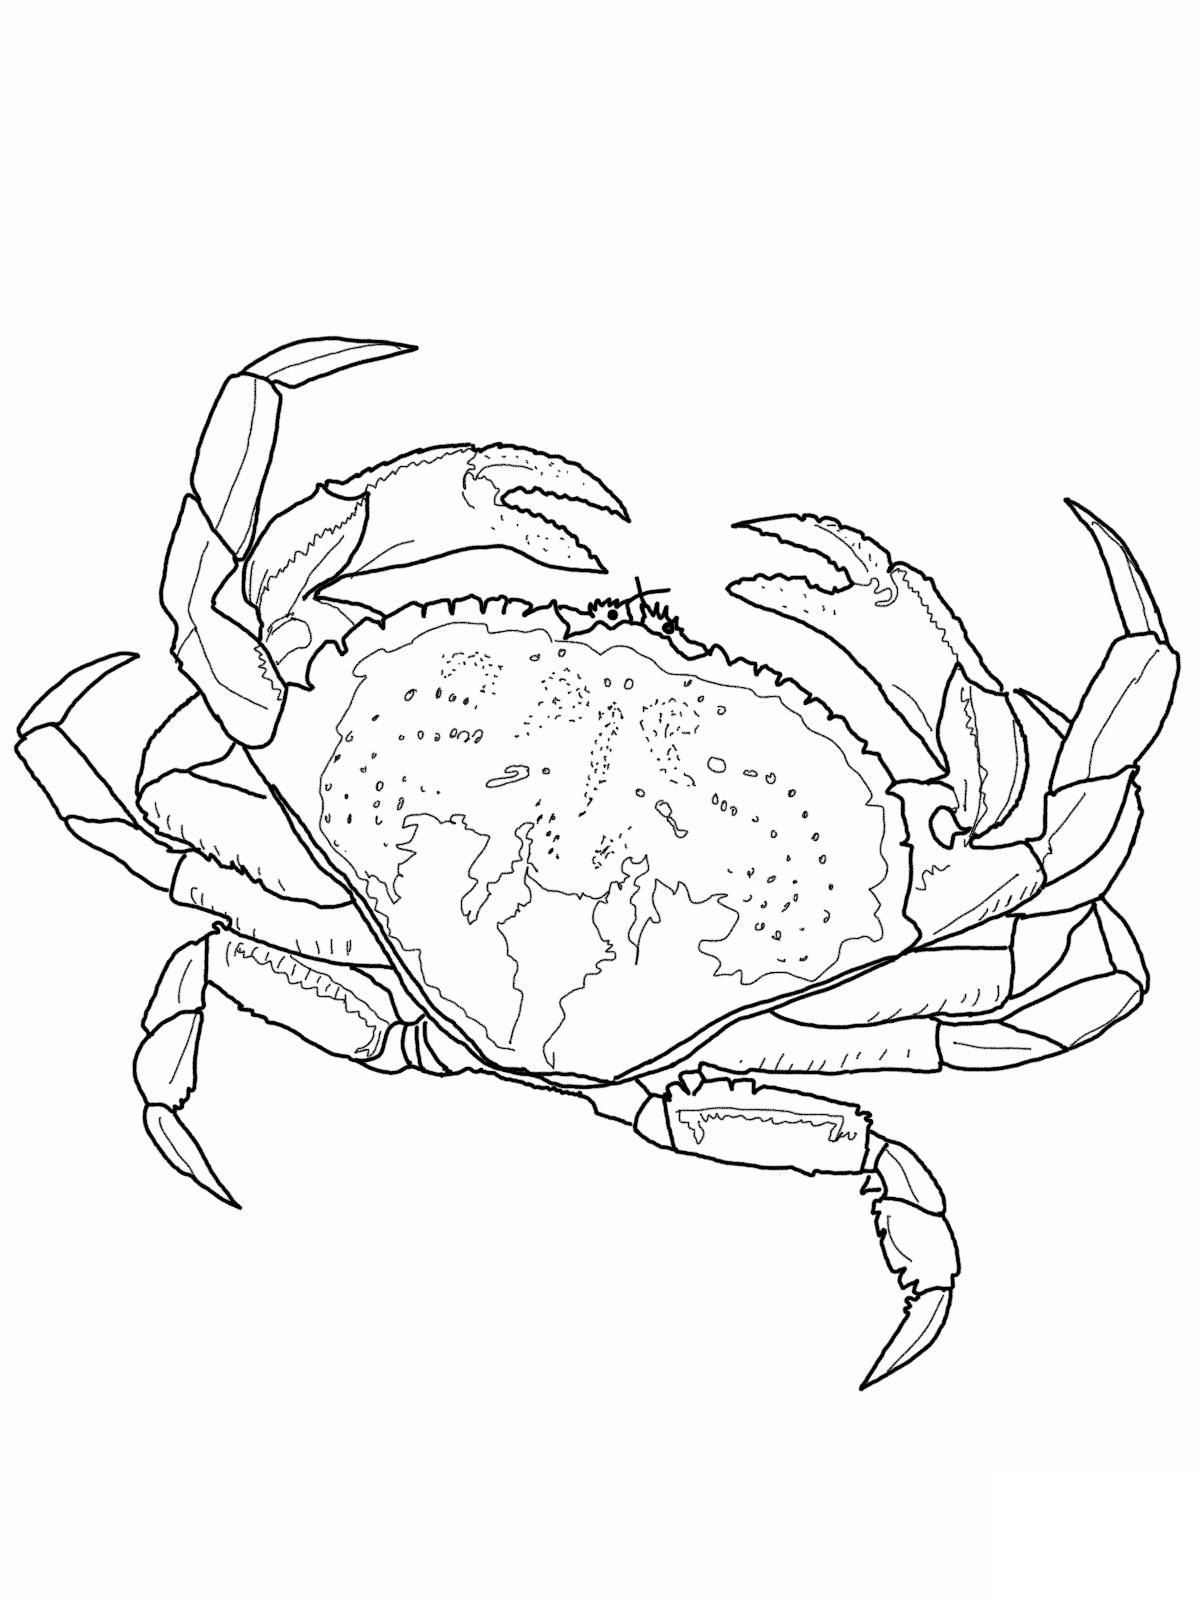 Coconut Crab coloring #11, Download drawings